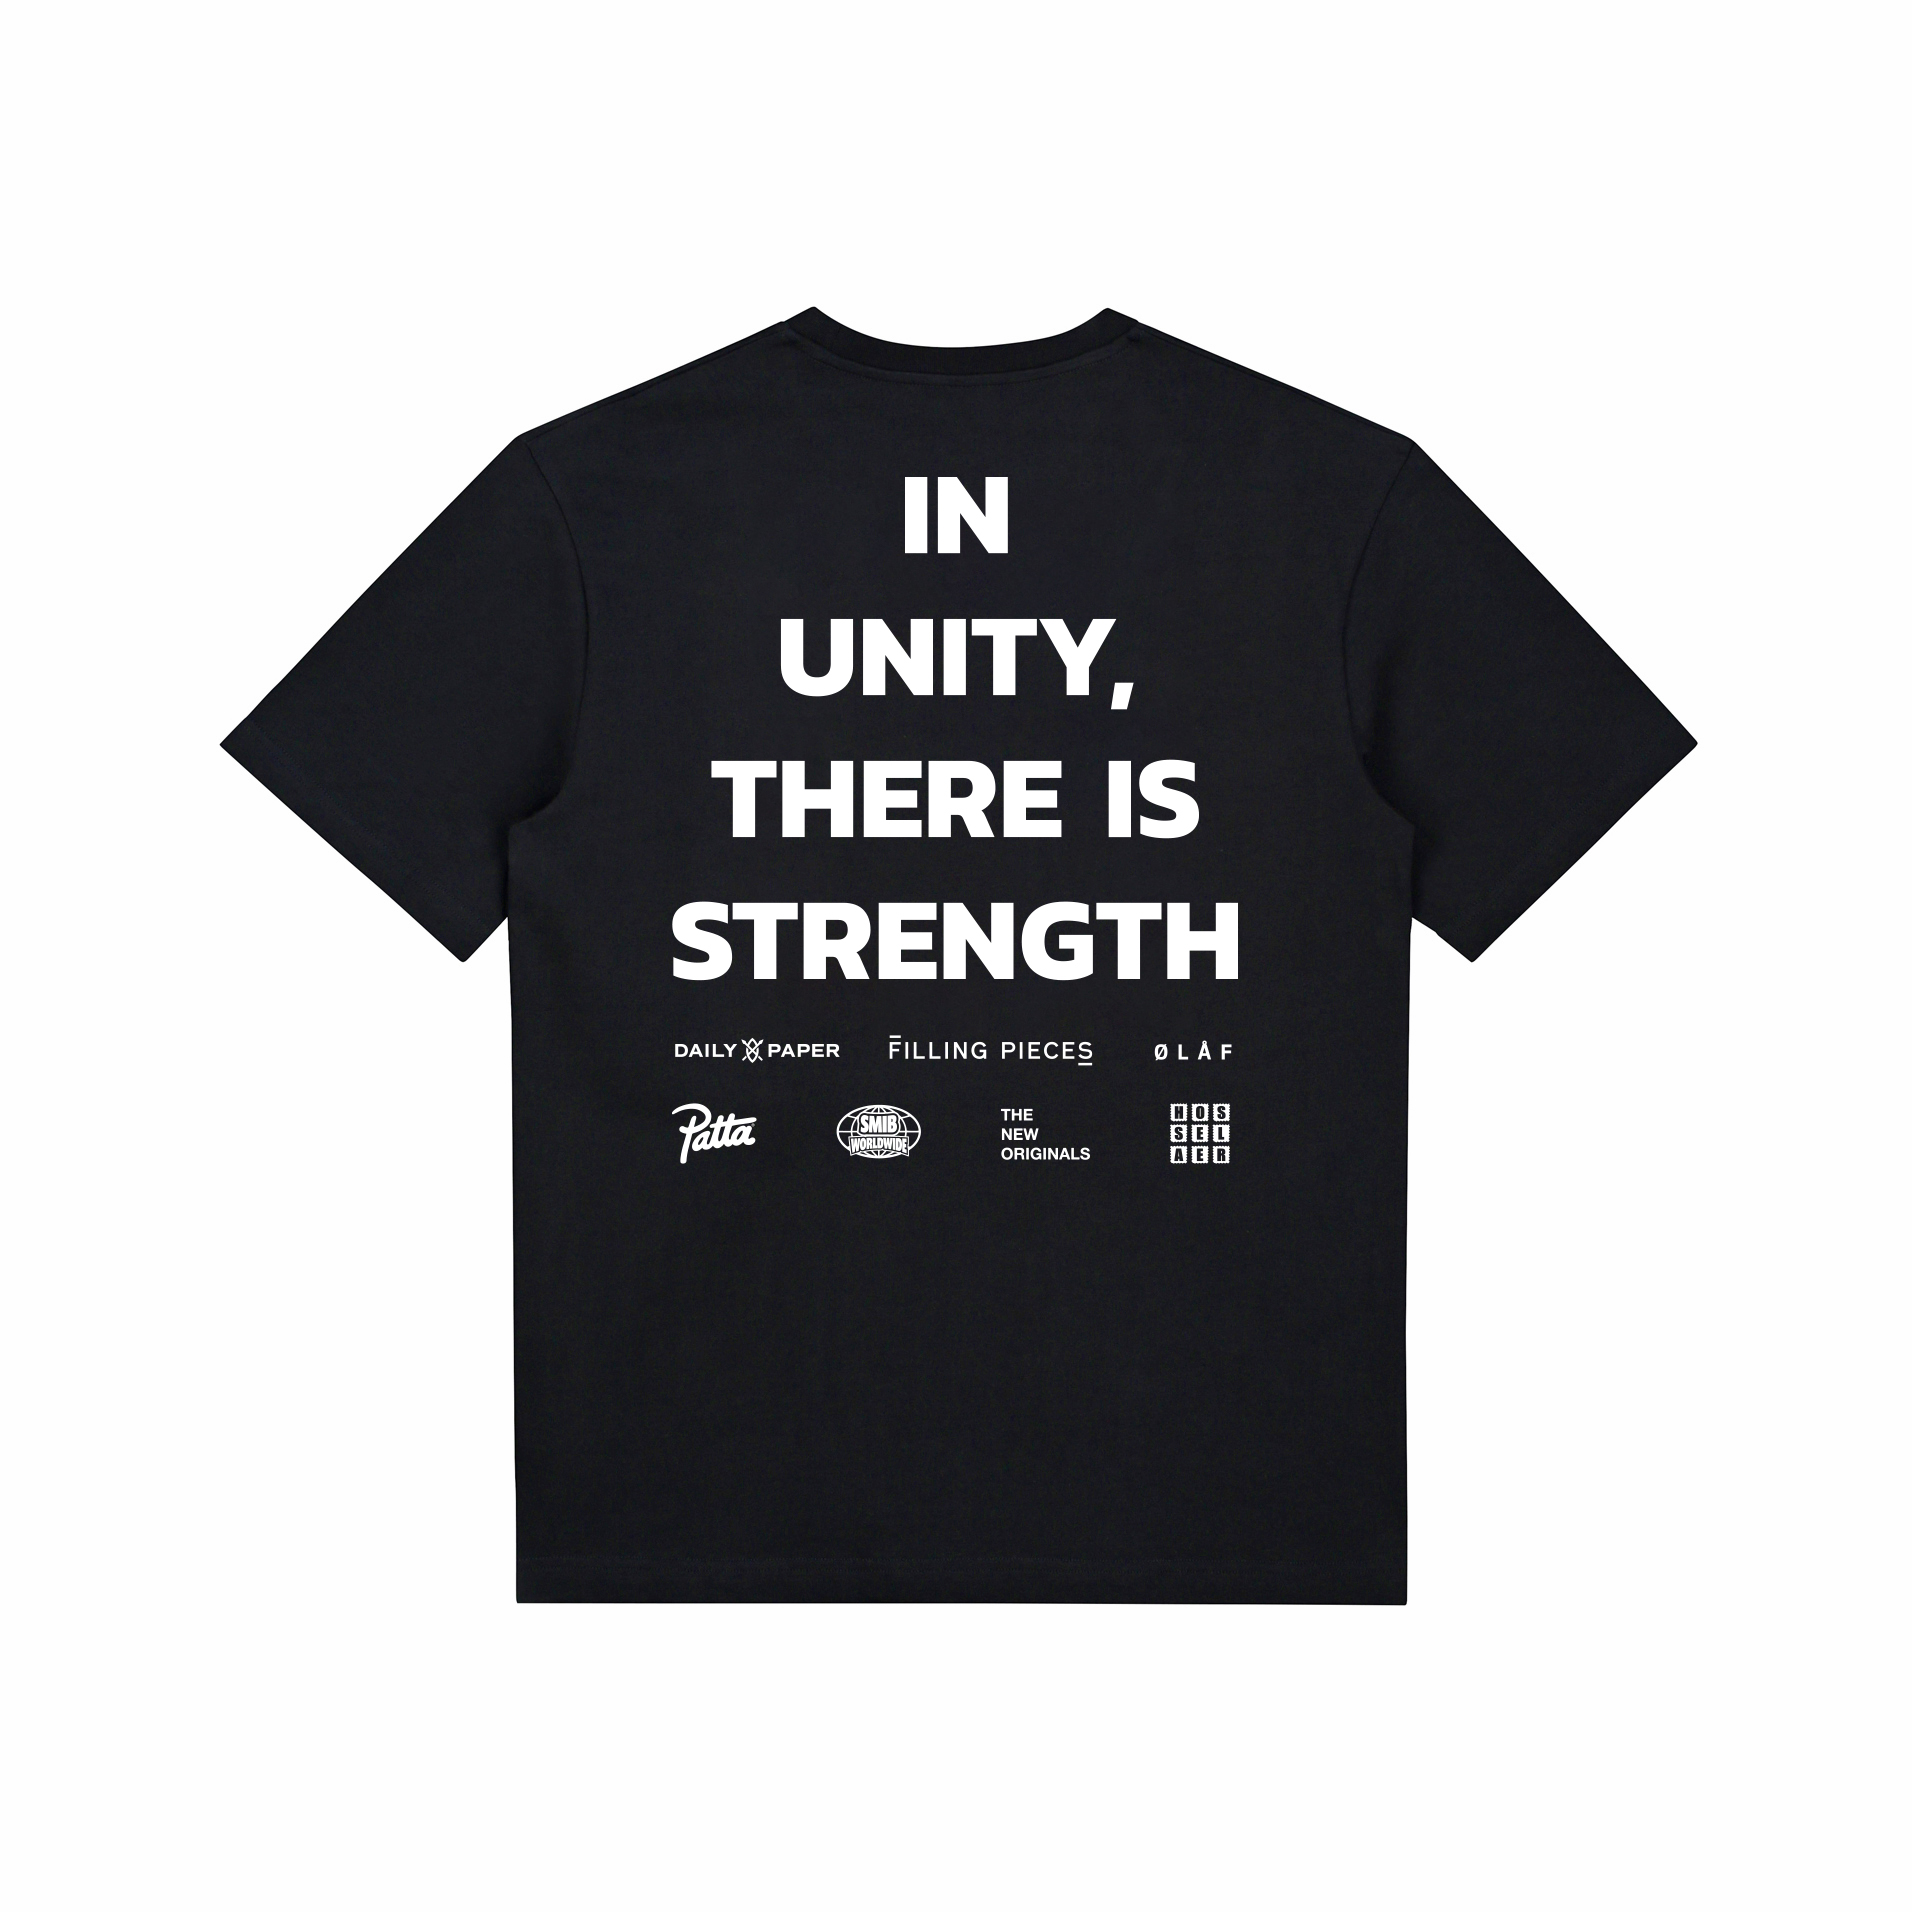 Black-Owned Amsterdam Brands unite for Charity T-Shirt